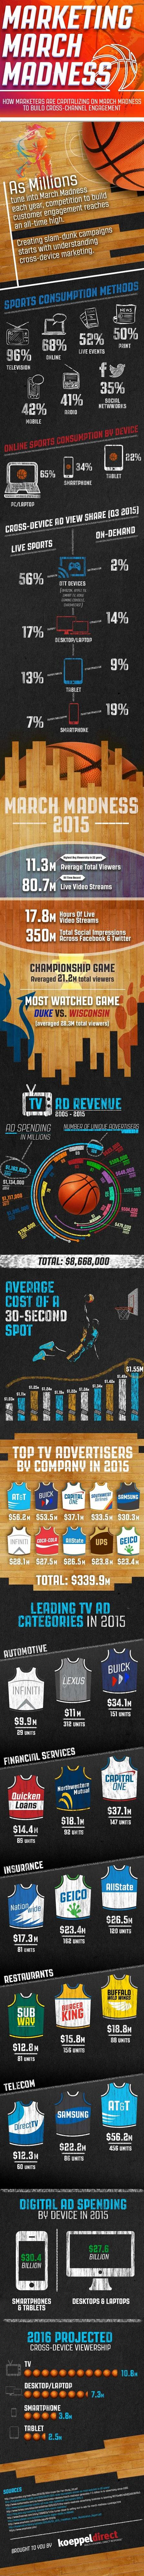 How Marketers Are Capitalizing on March Madness to Build Cross-Channel Engagement